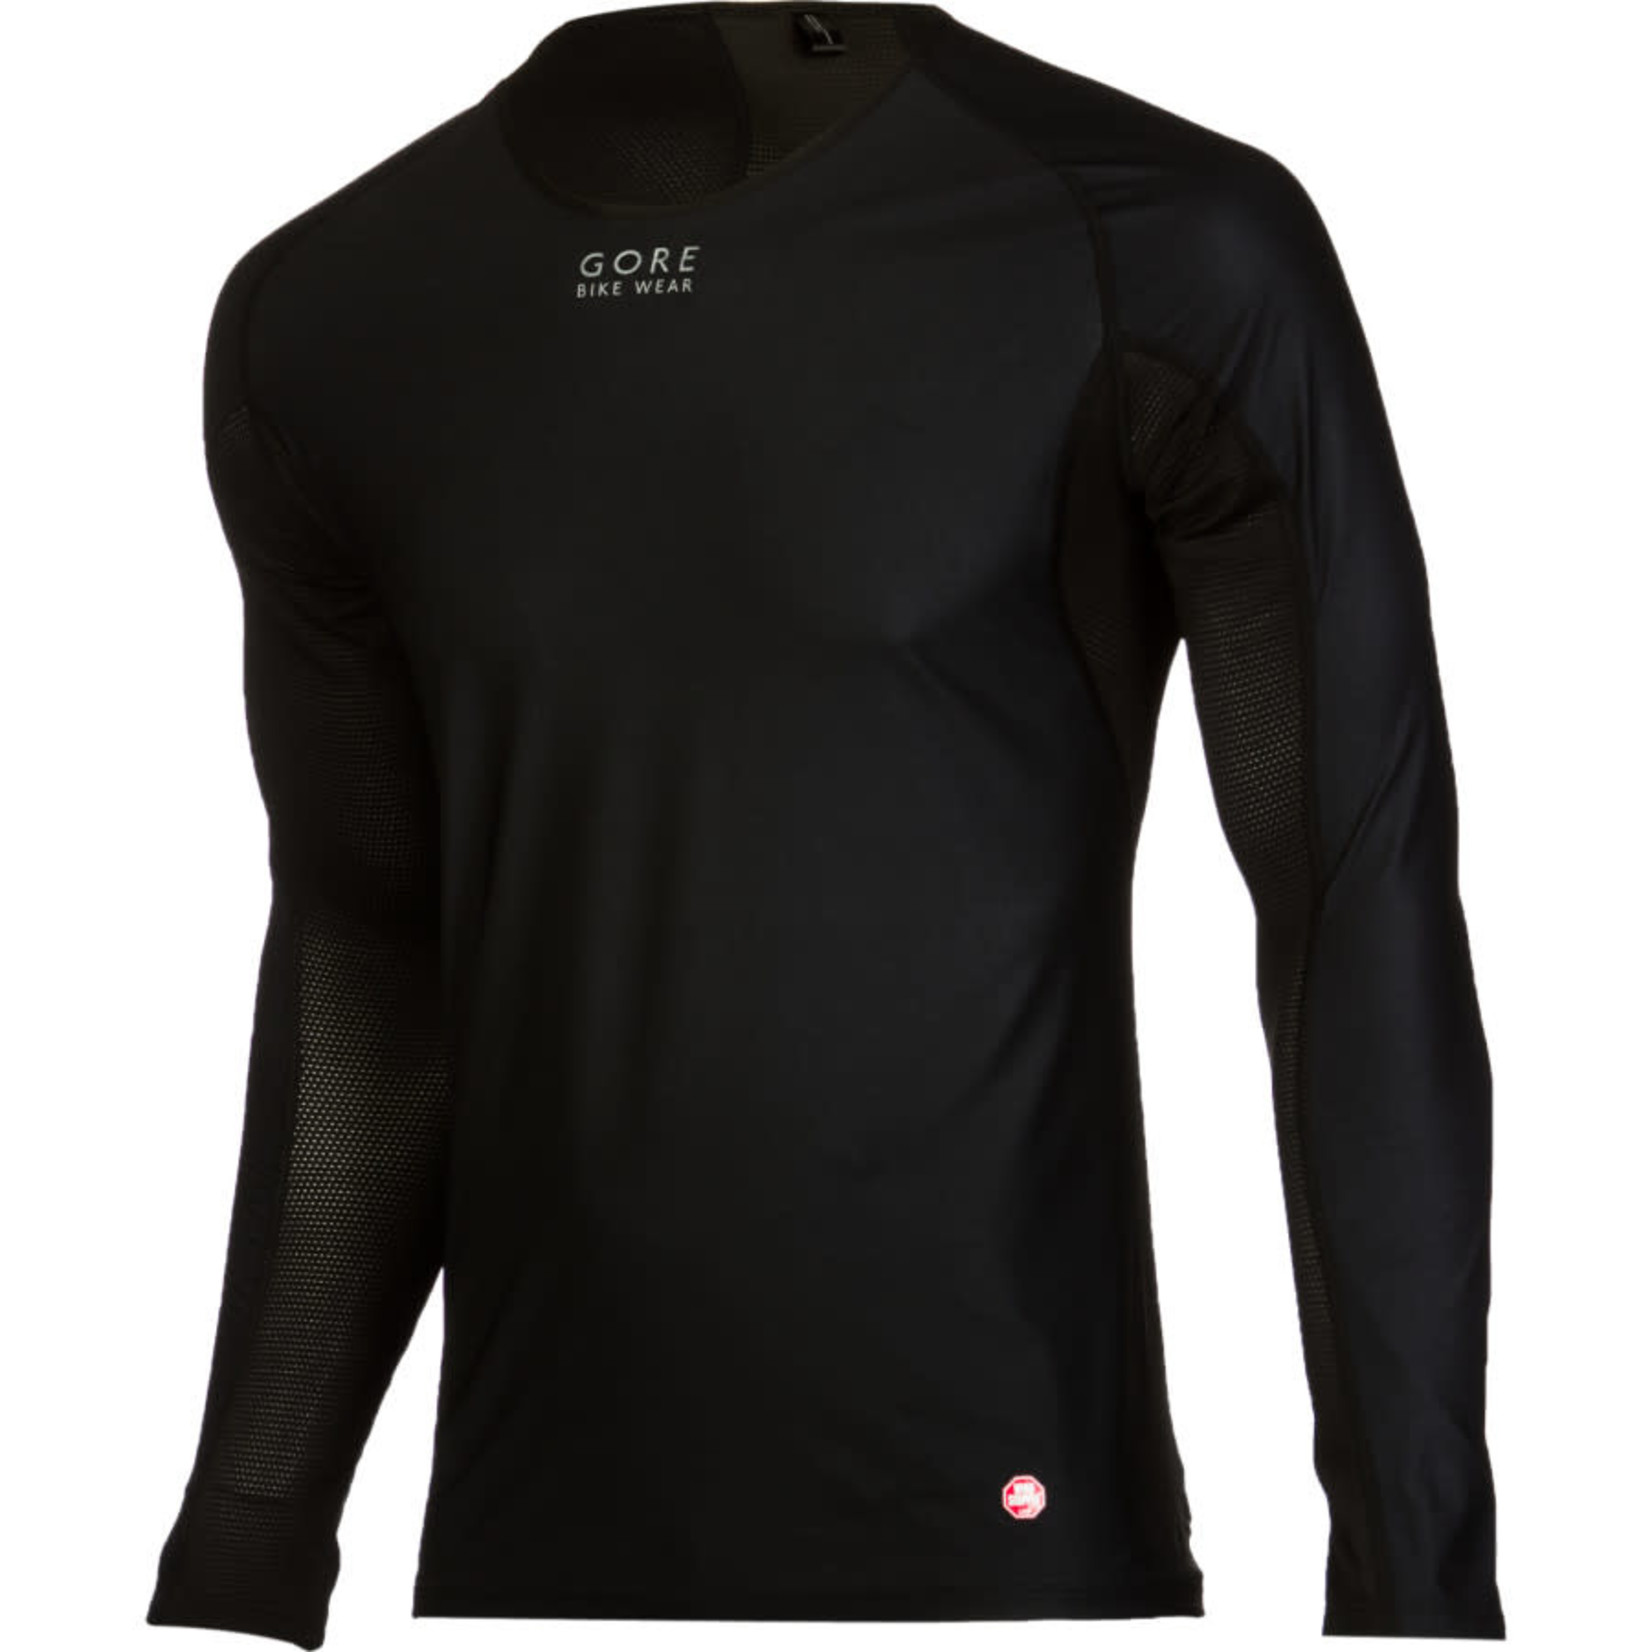 Gore GORE Base Layer Thermo Long Sleeve